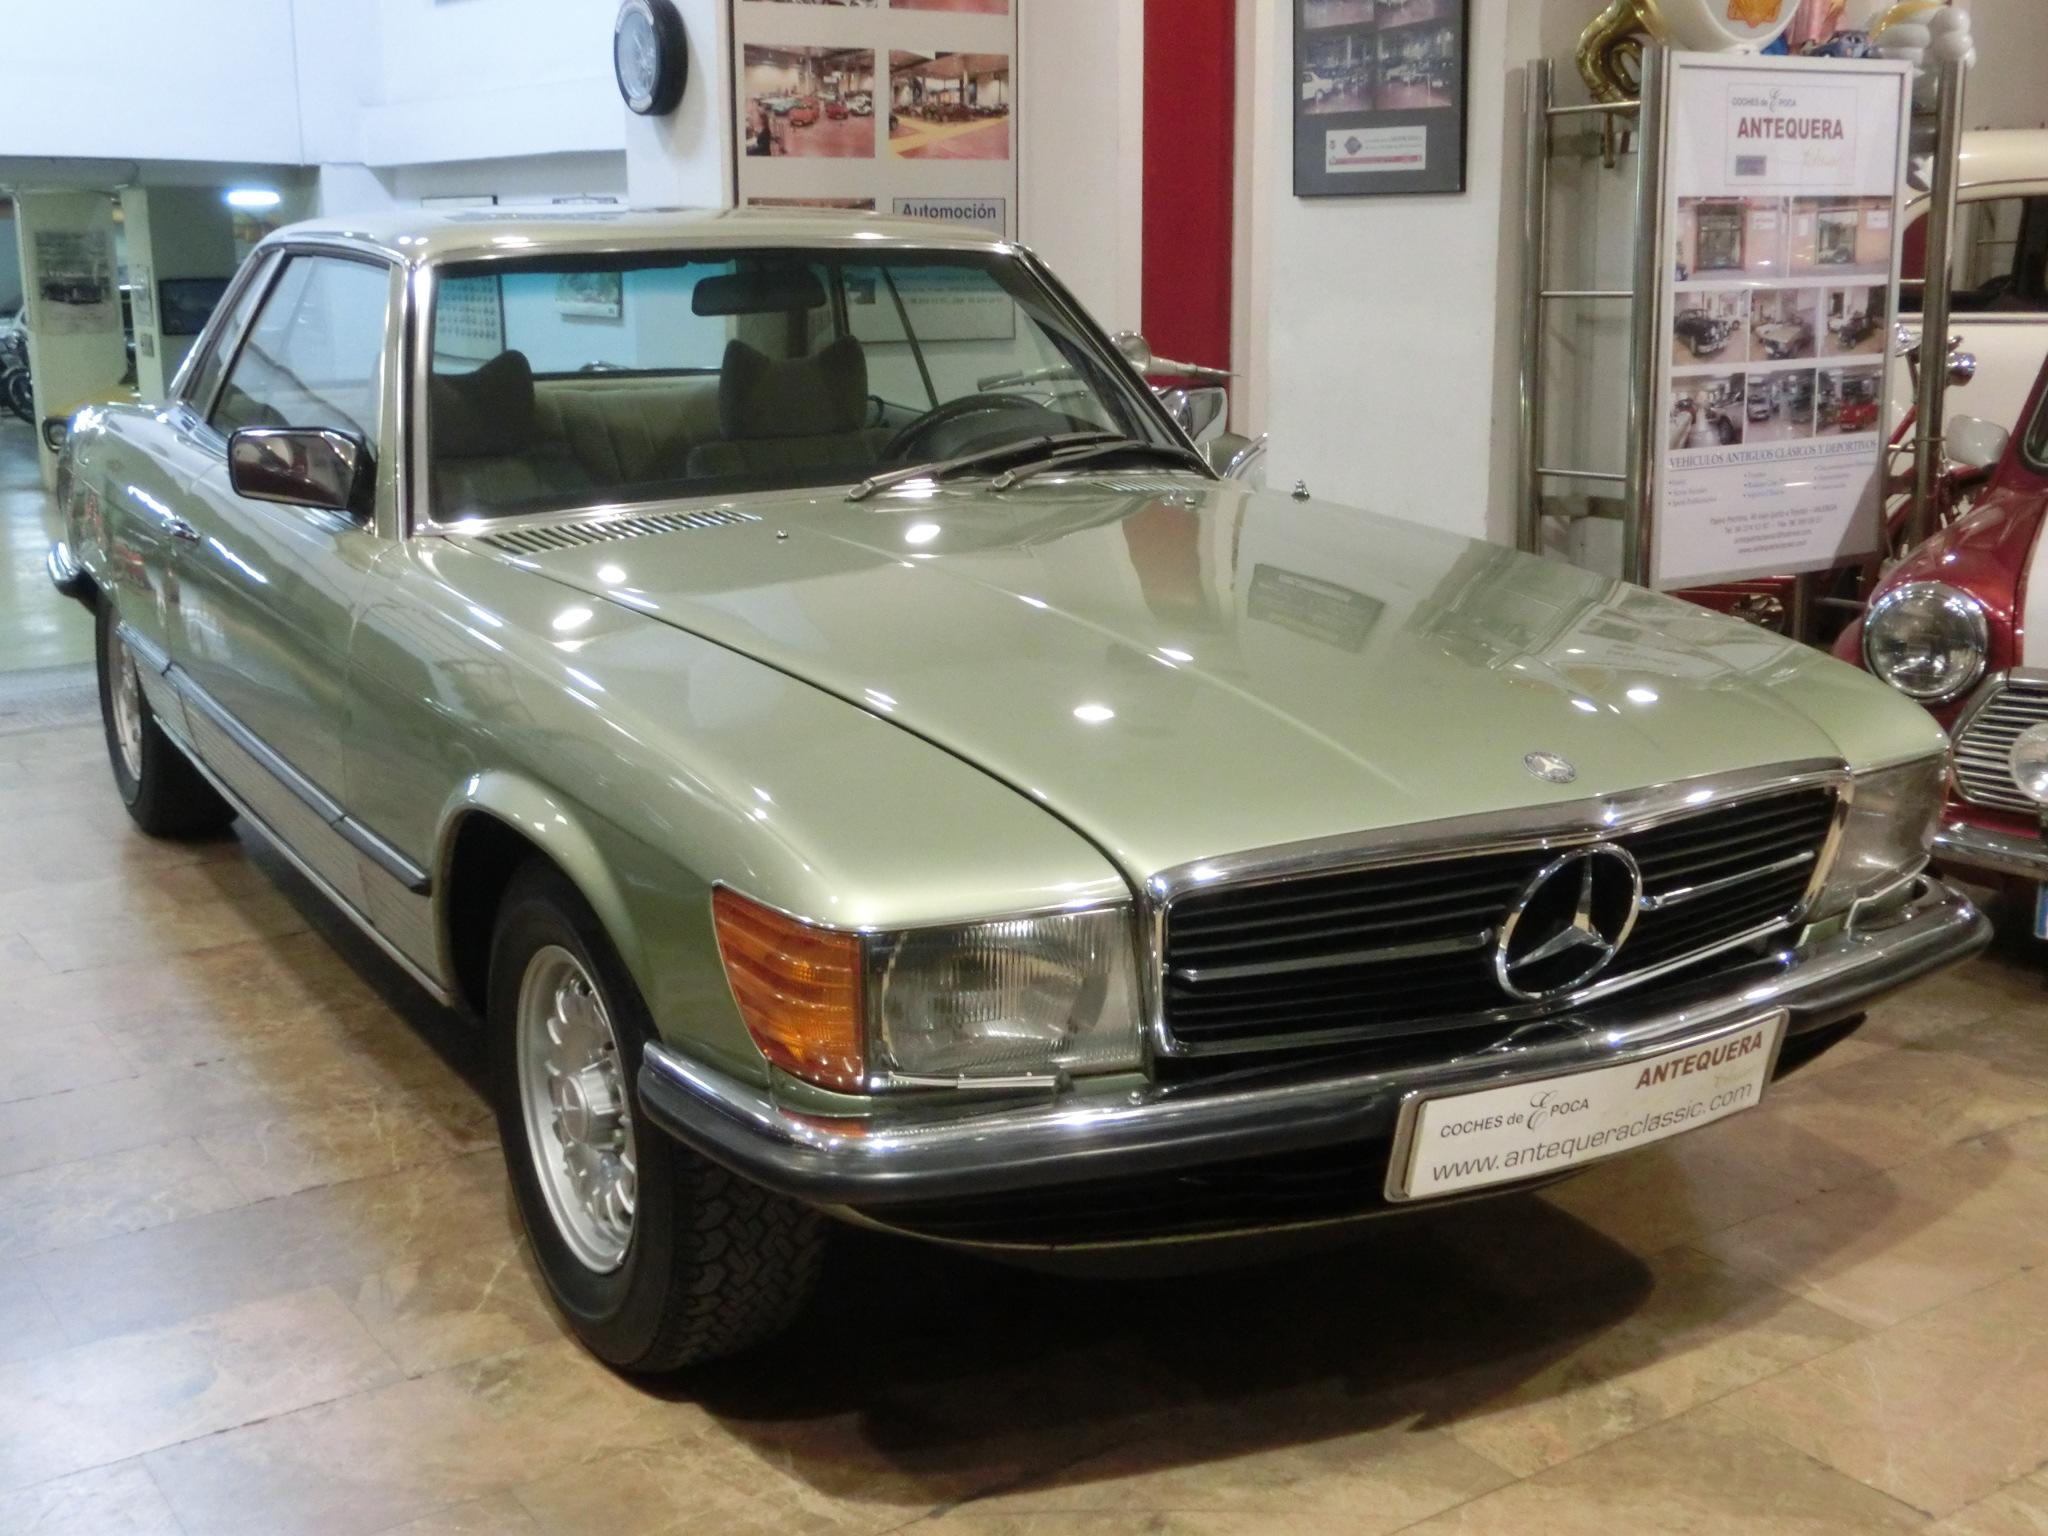 Antequera classic mercedes benz 450 slc c107 a o 1976 for Mercedes benz com mx mexico